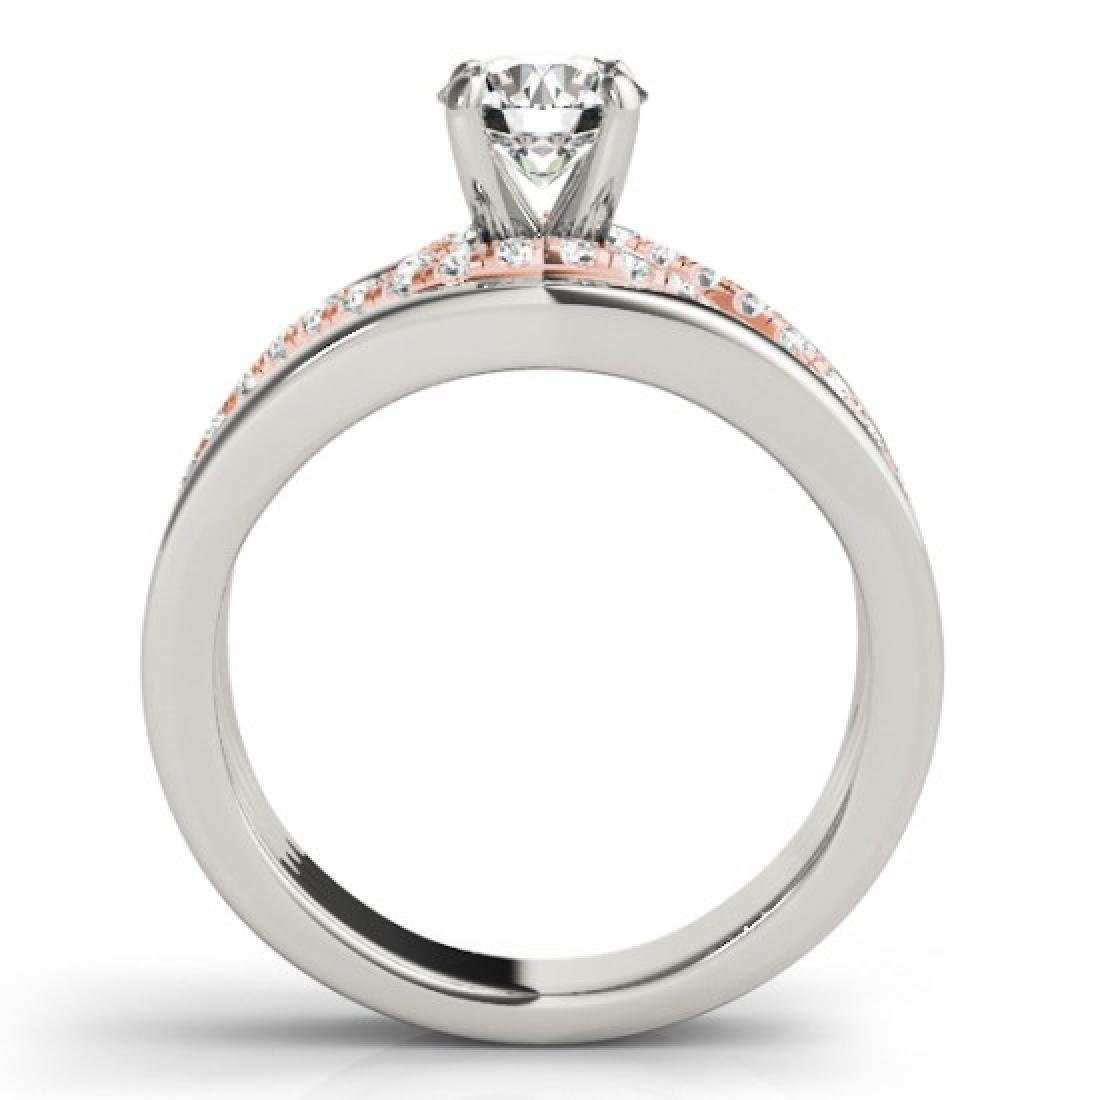 1.3 CTW Certified VS/SI Diamond Solitaire Ring 14K - 2